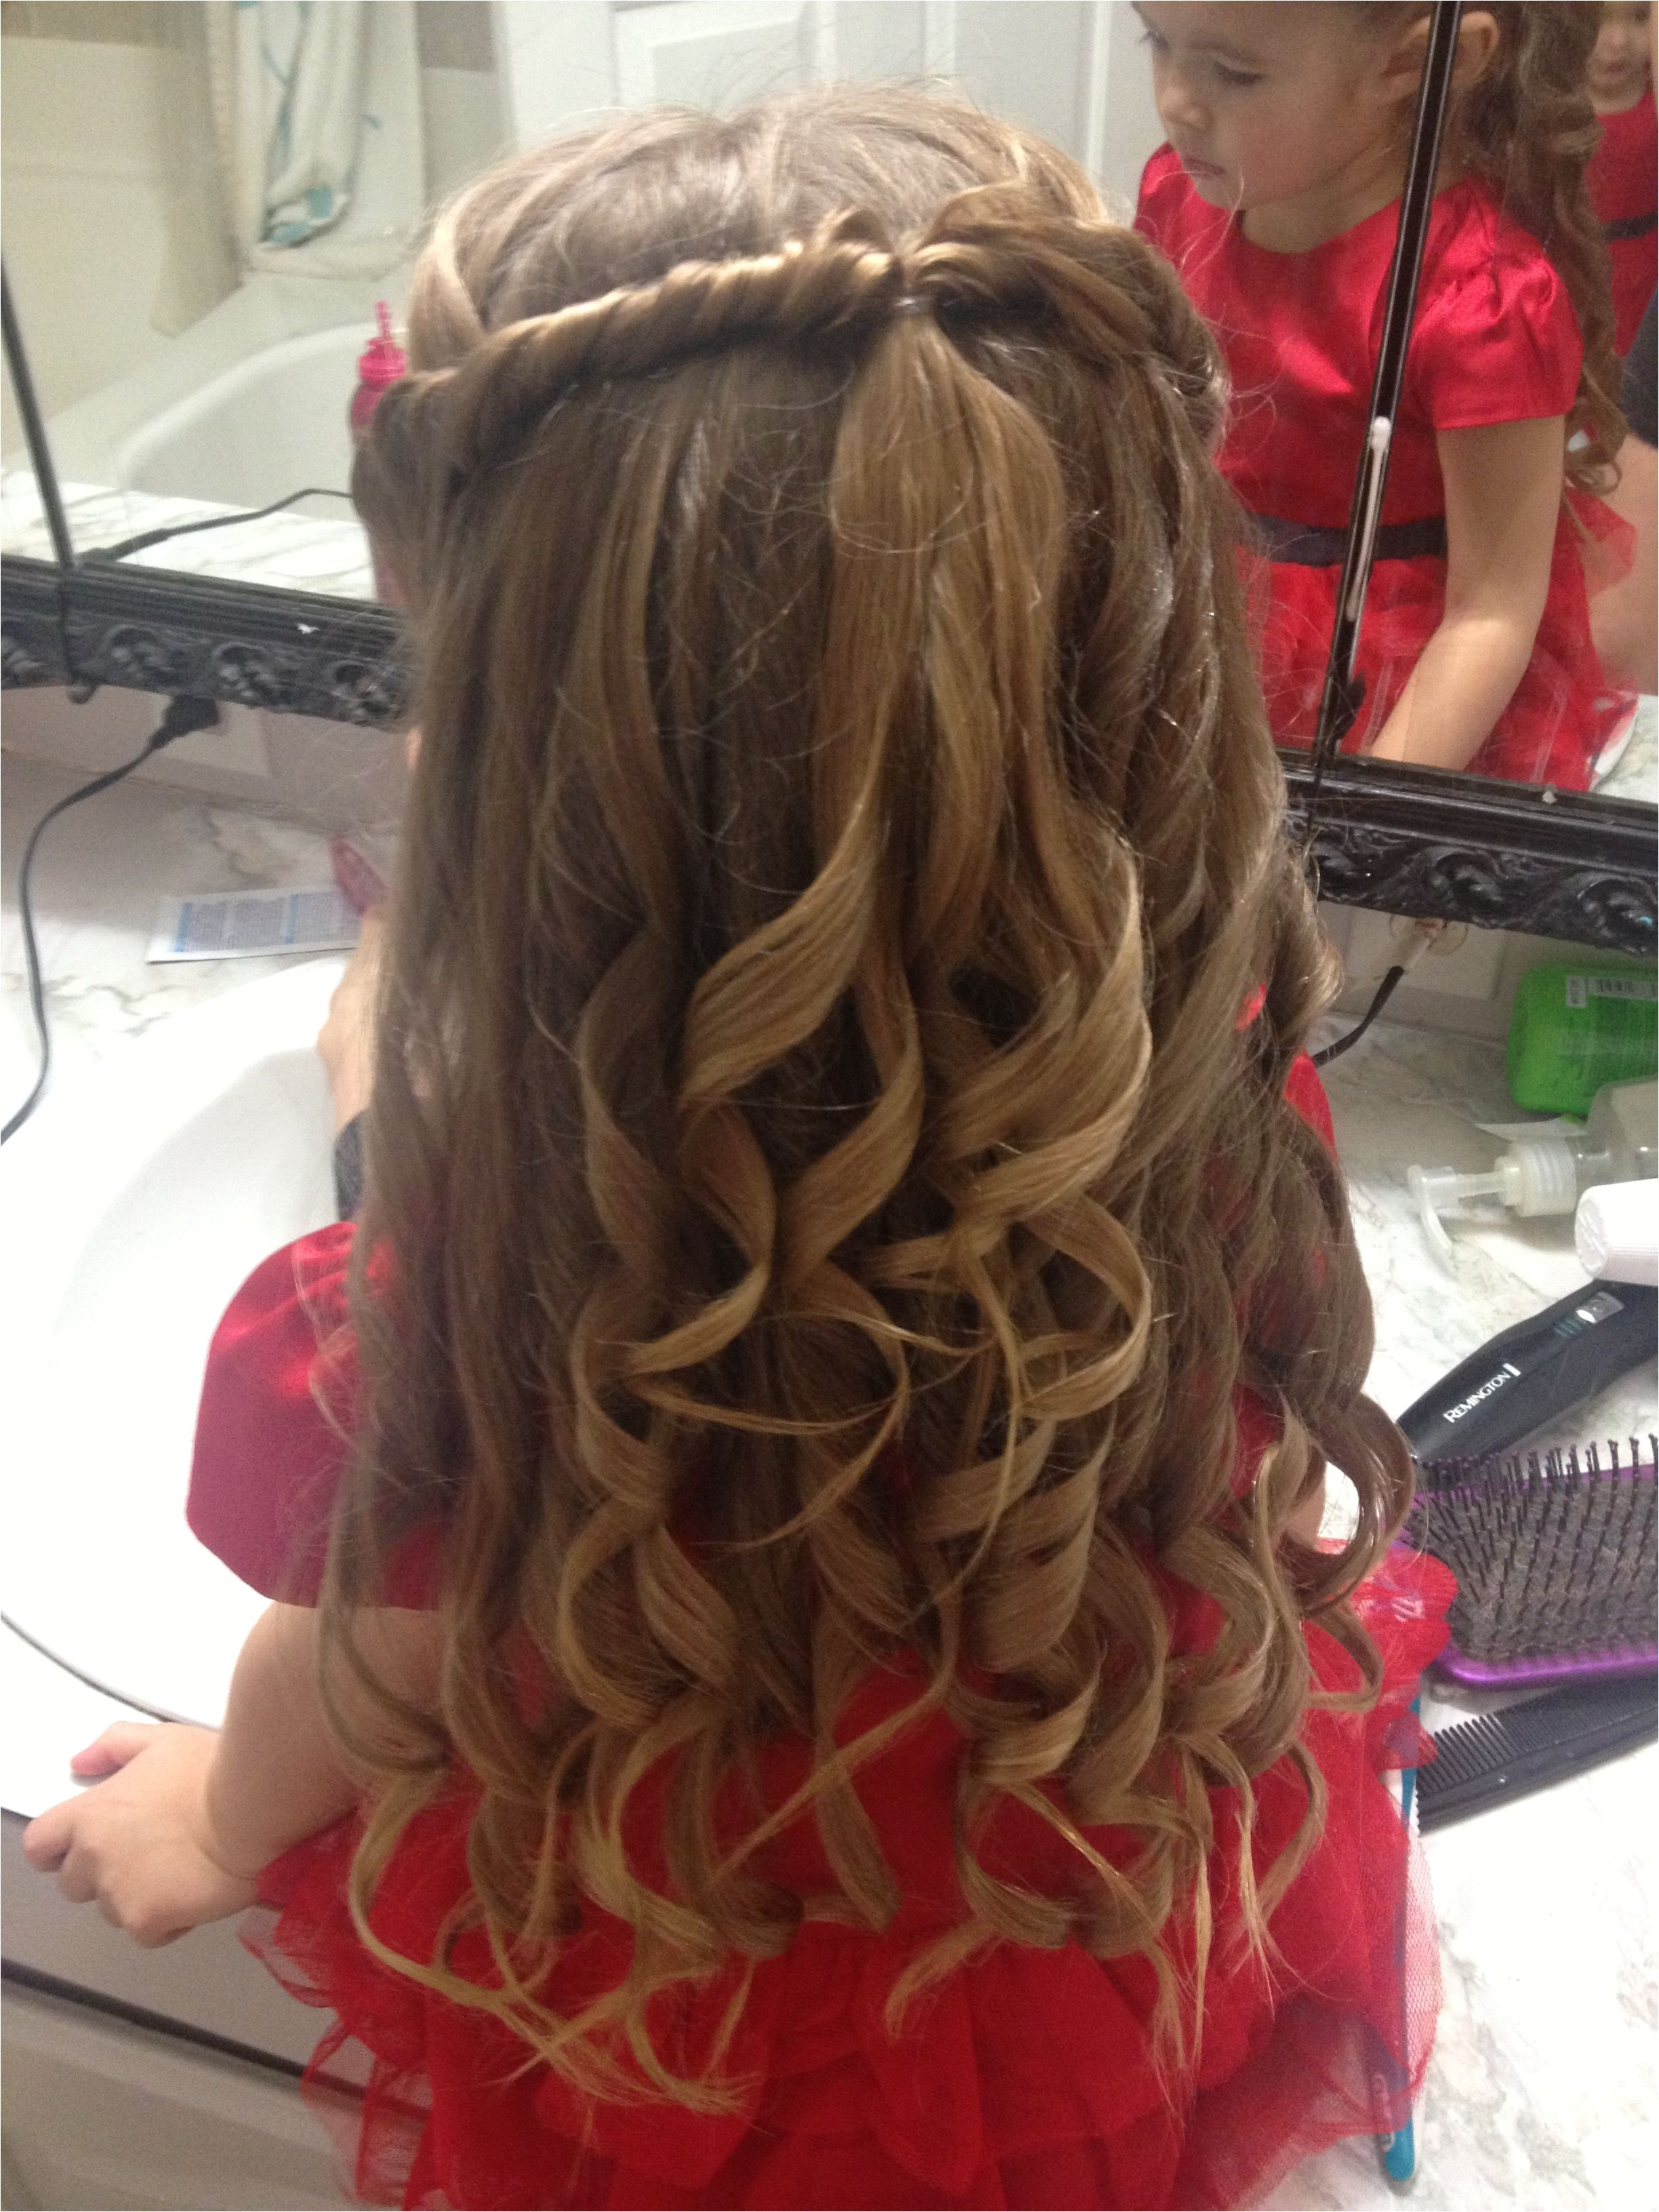 Hairstyles for Special Occasions Hairstyles for Girls for Wedding Fresh Cute Little Girls Hair Style